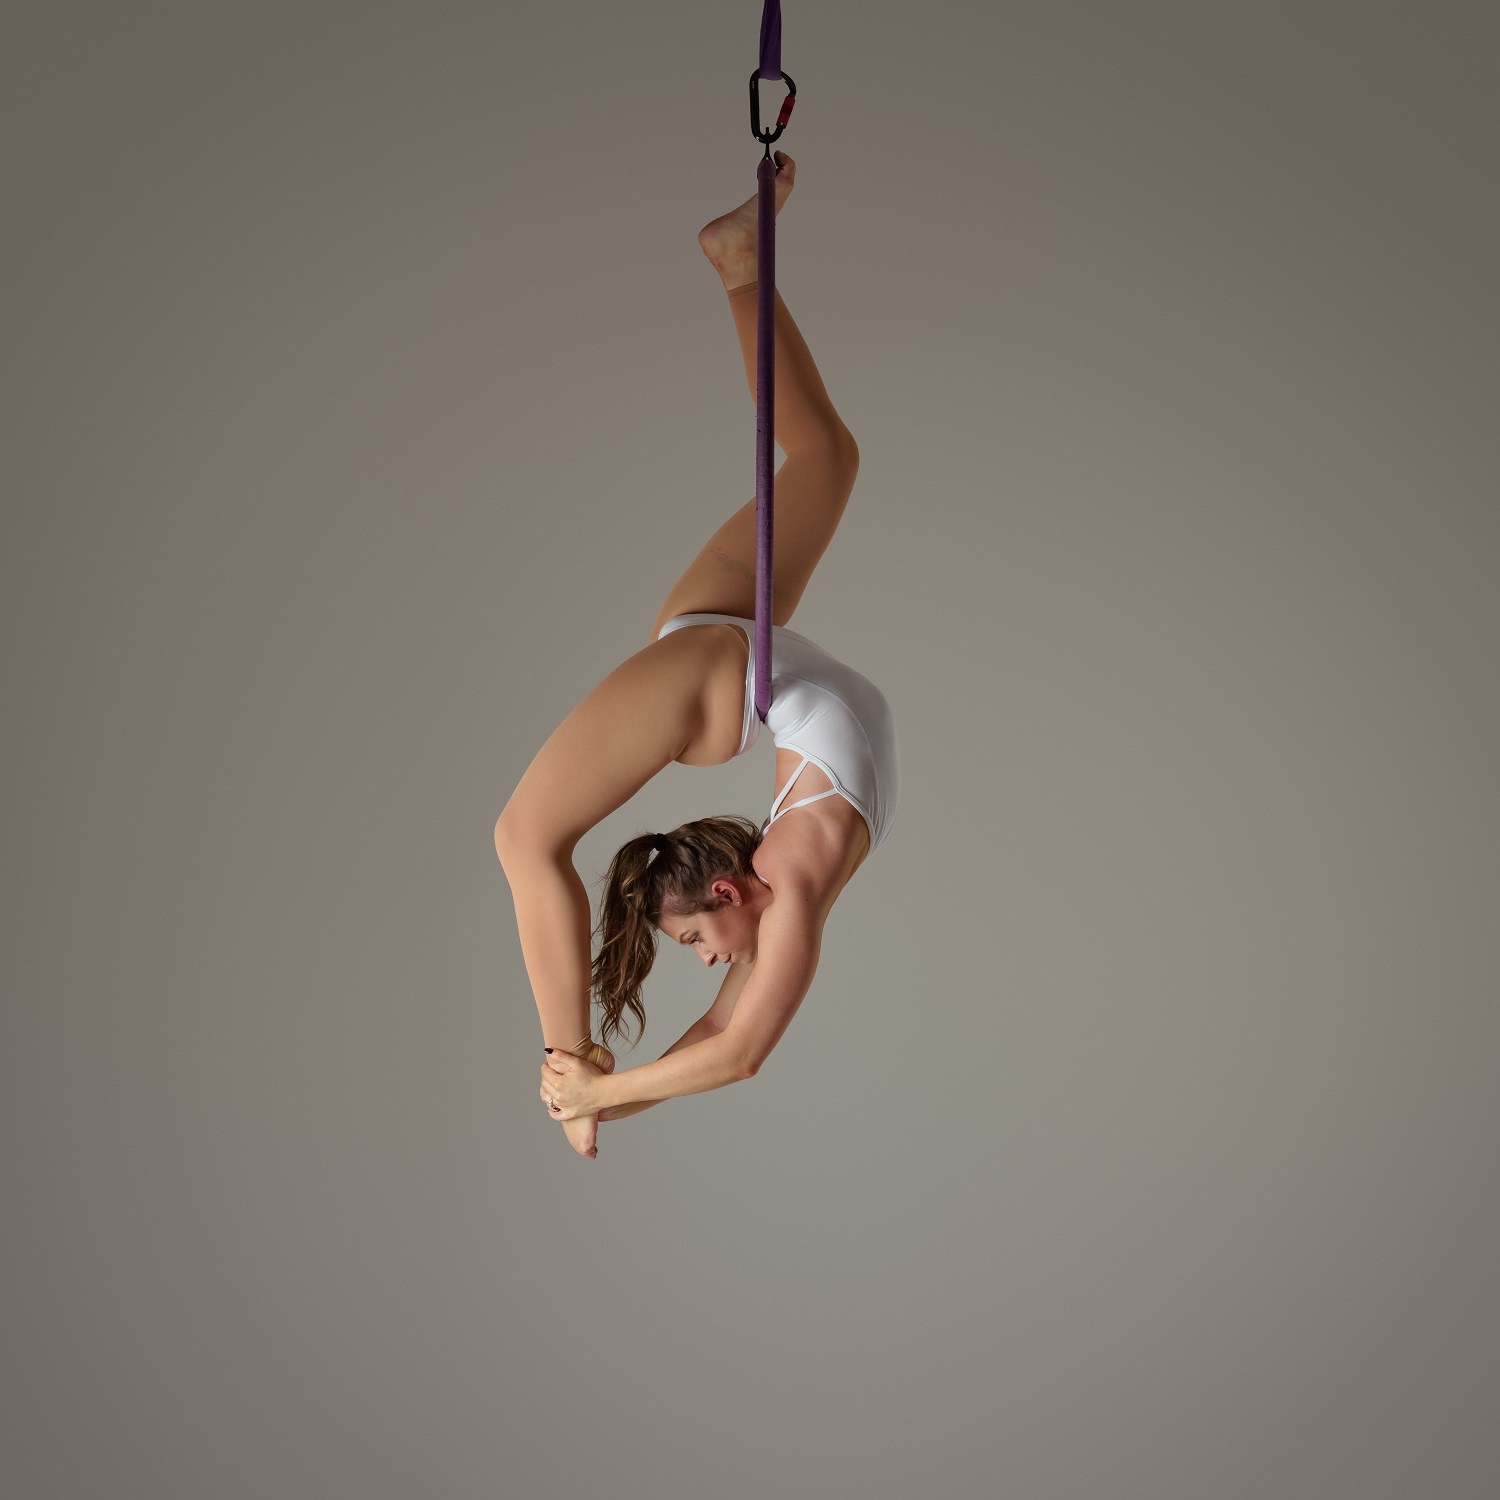 Can You Wear A Menstrual Cup Whilst Doing Aerial?